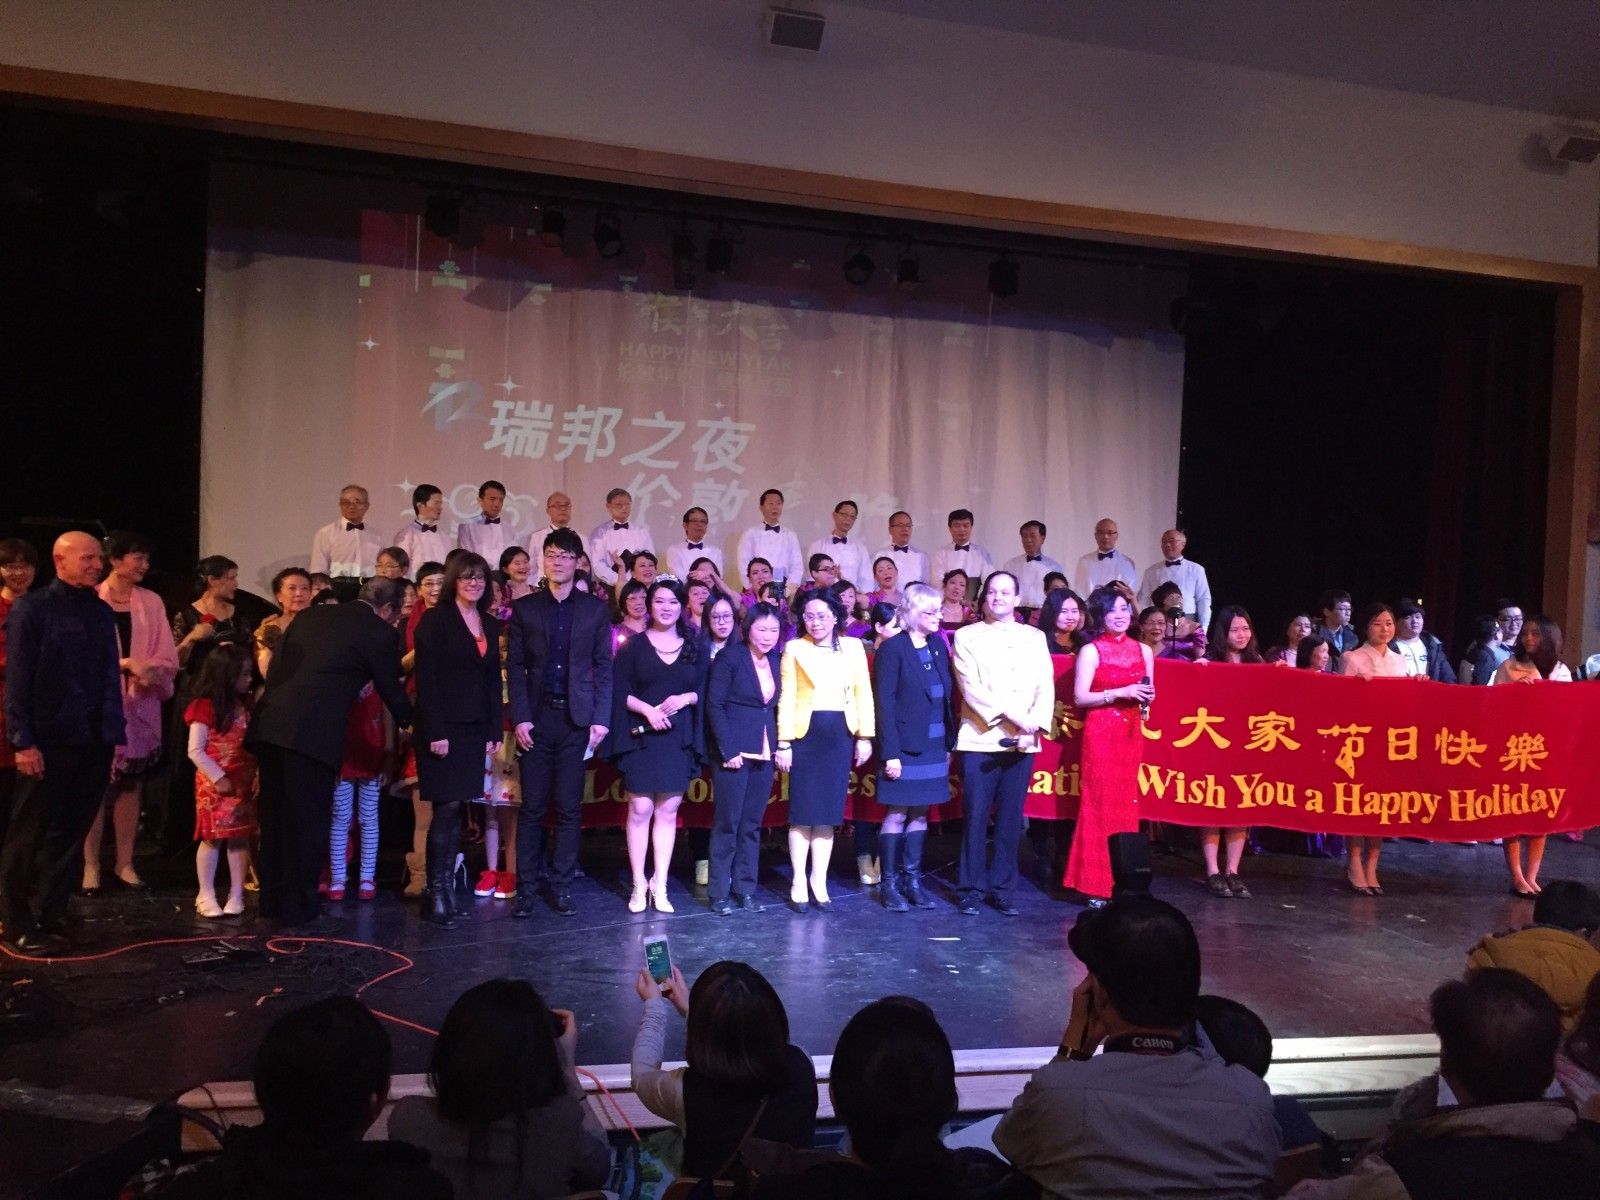 London Chinese Association ring in New Year at Sir Frederick Banting School